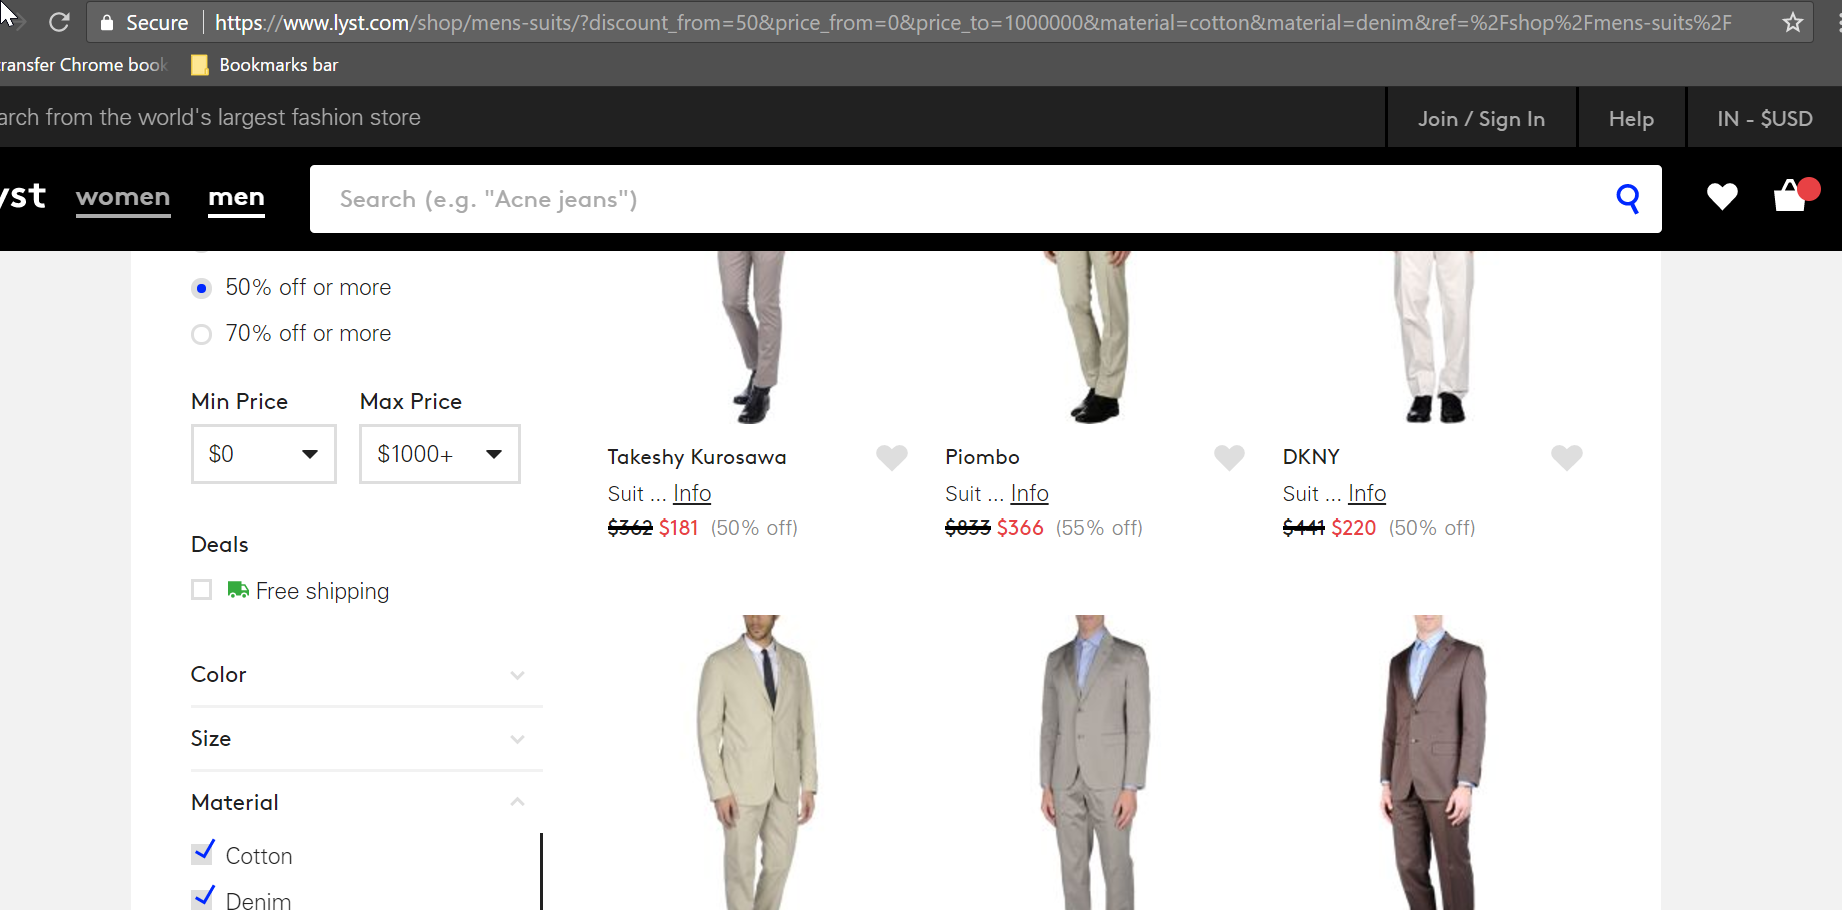 Filters for easy search on fashion ecommerce websites